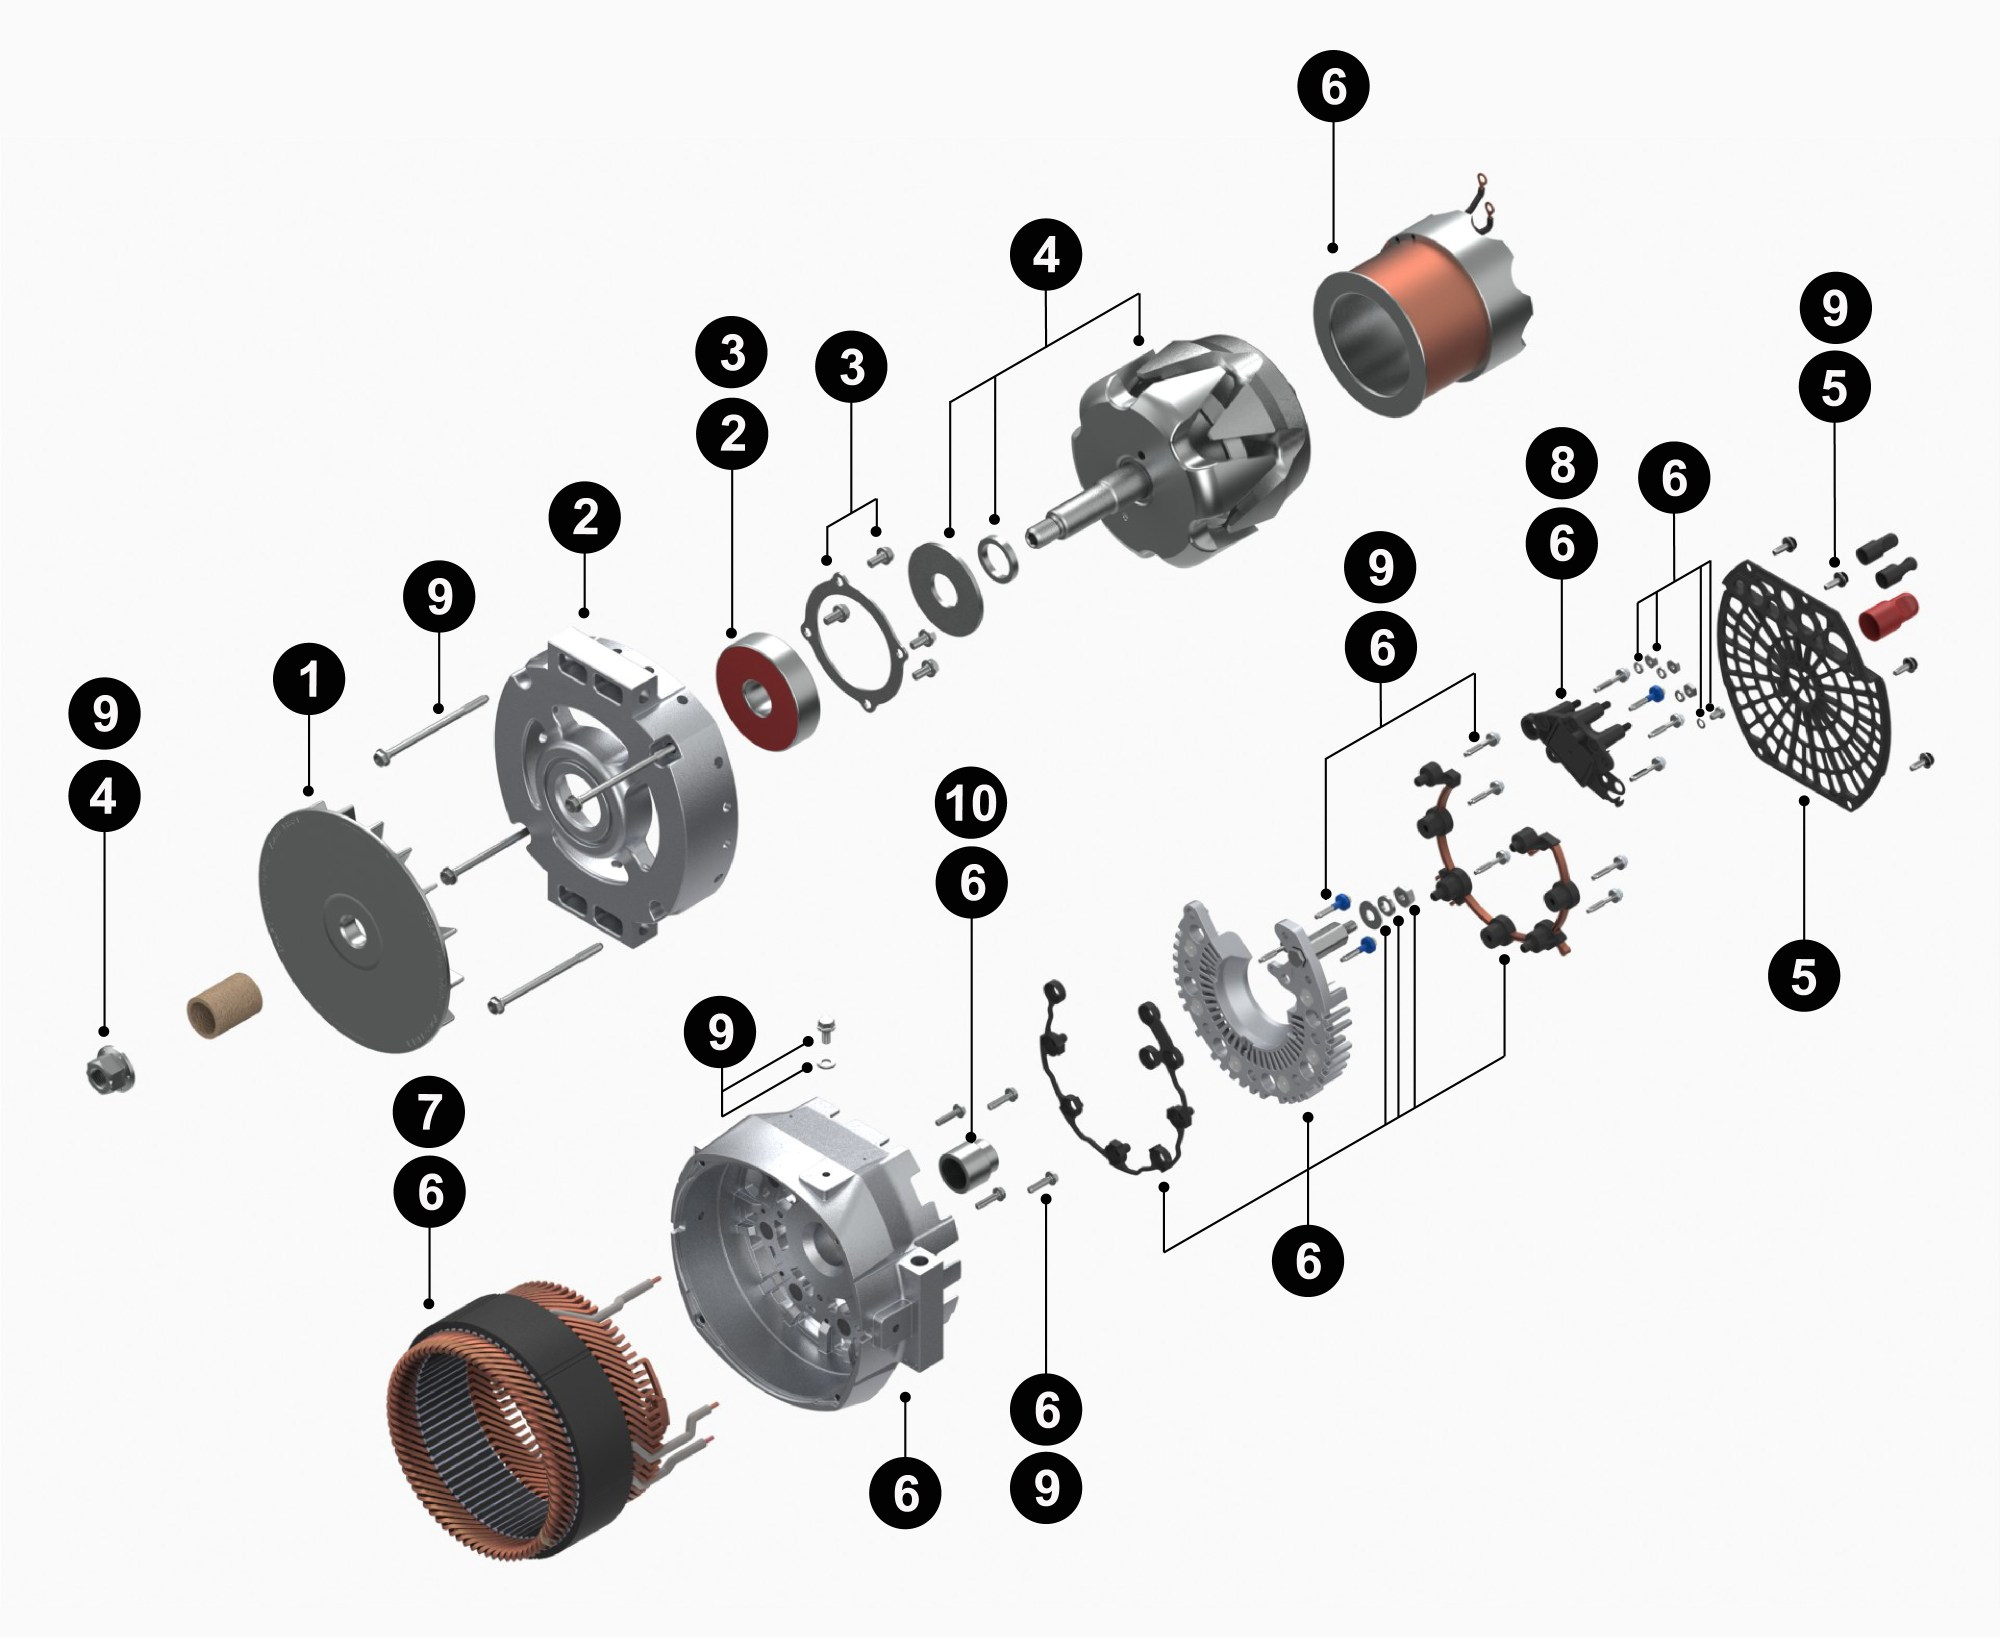 hight resolution of 55si service parts service parts